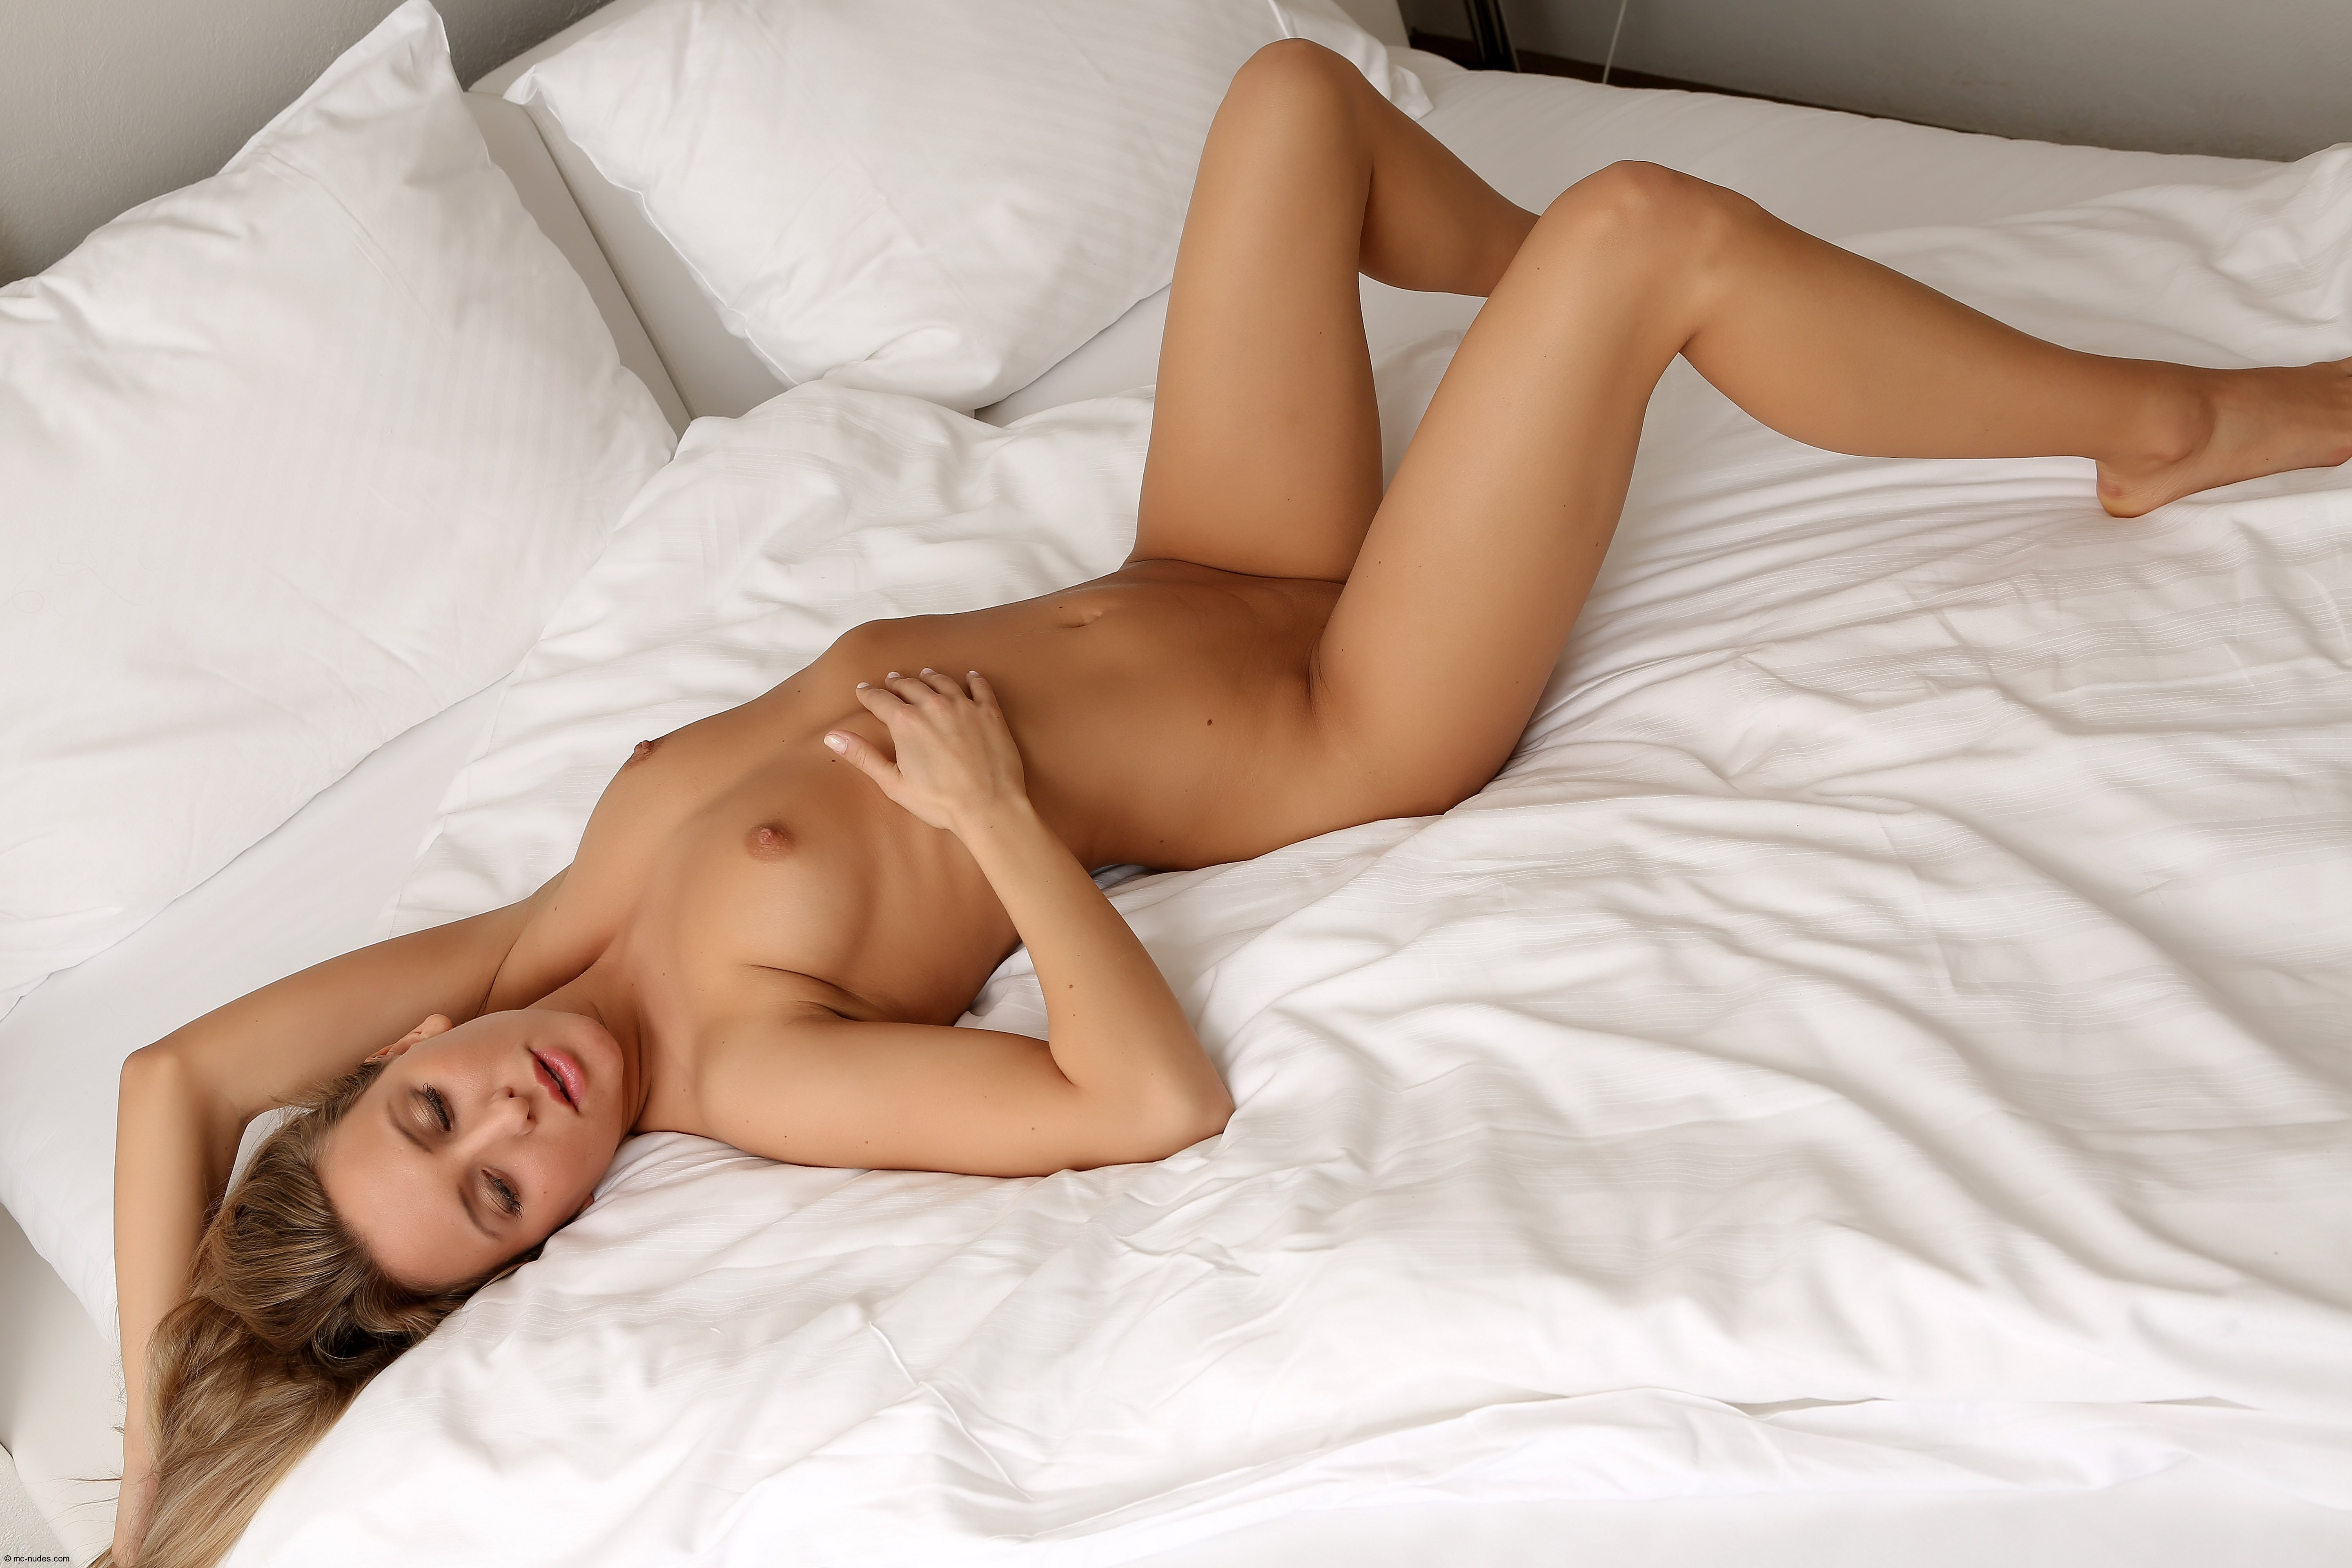 super-hot-girls-naked-in-bed-moaning-naked-pictures-of-hot-housewives